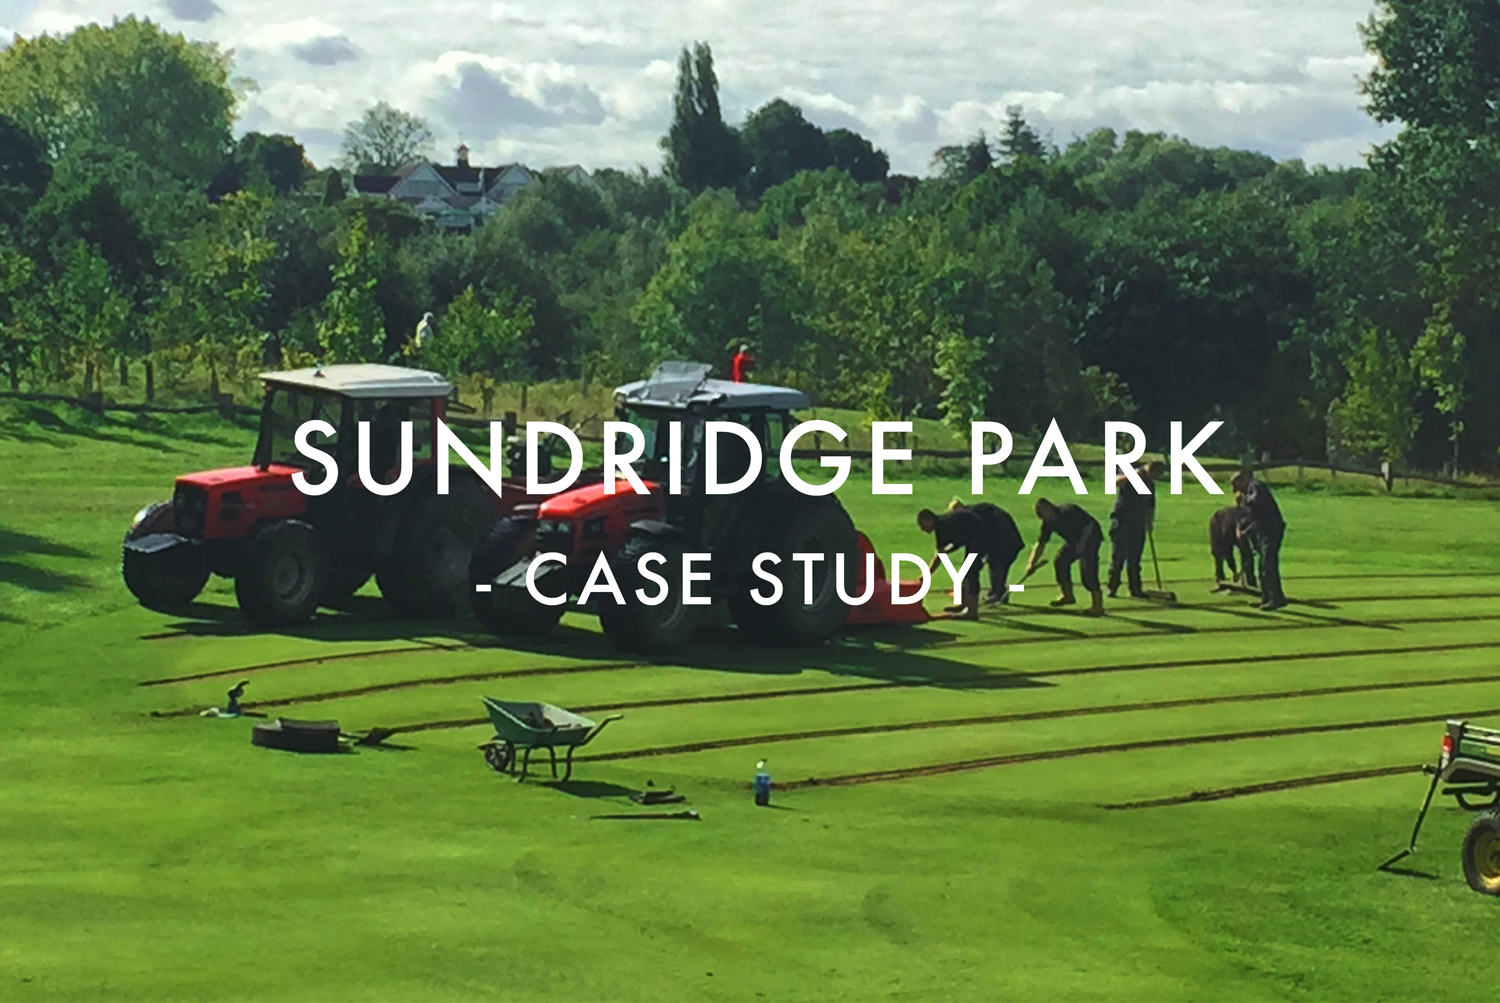 Sundridge Park - Case Study